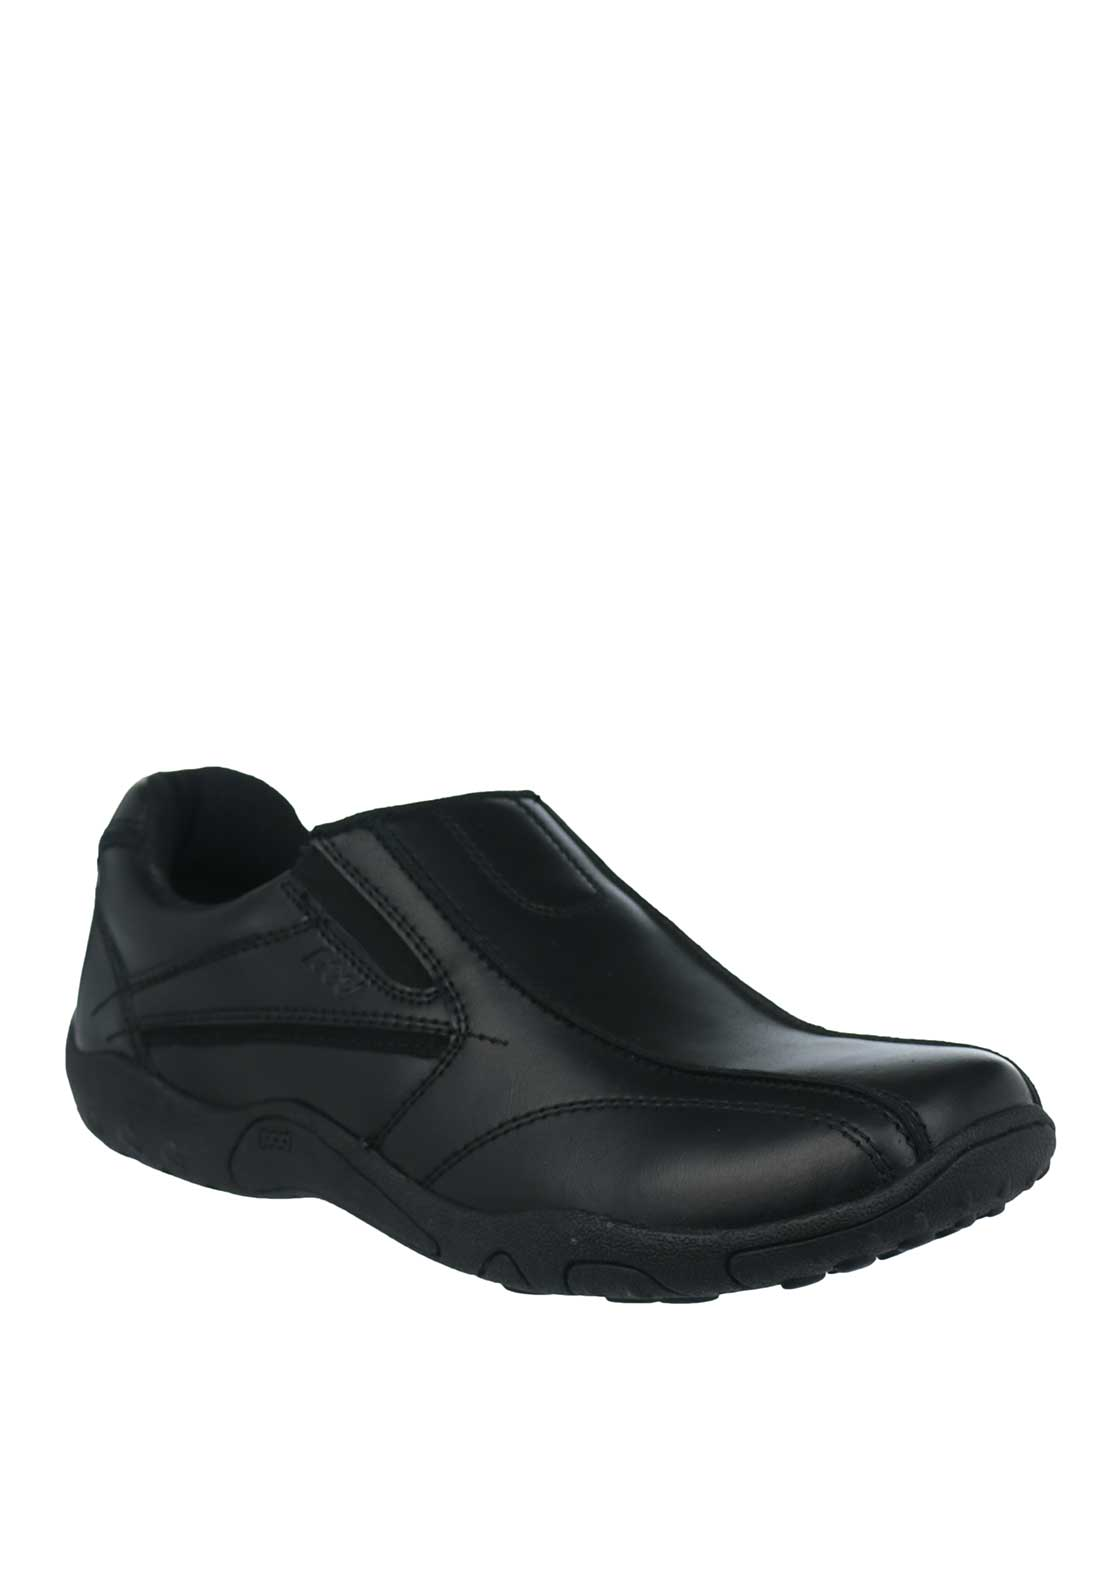 Pod Terry Leather Loafer Shoes, Black